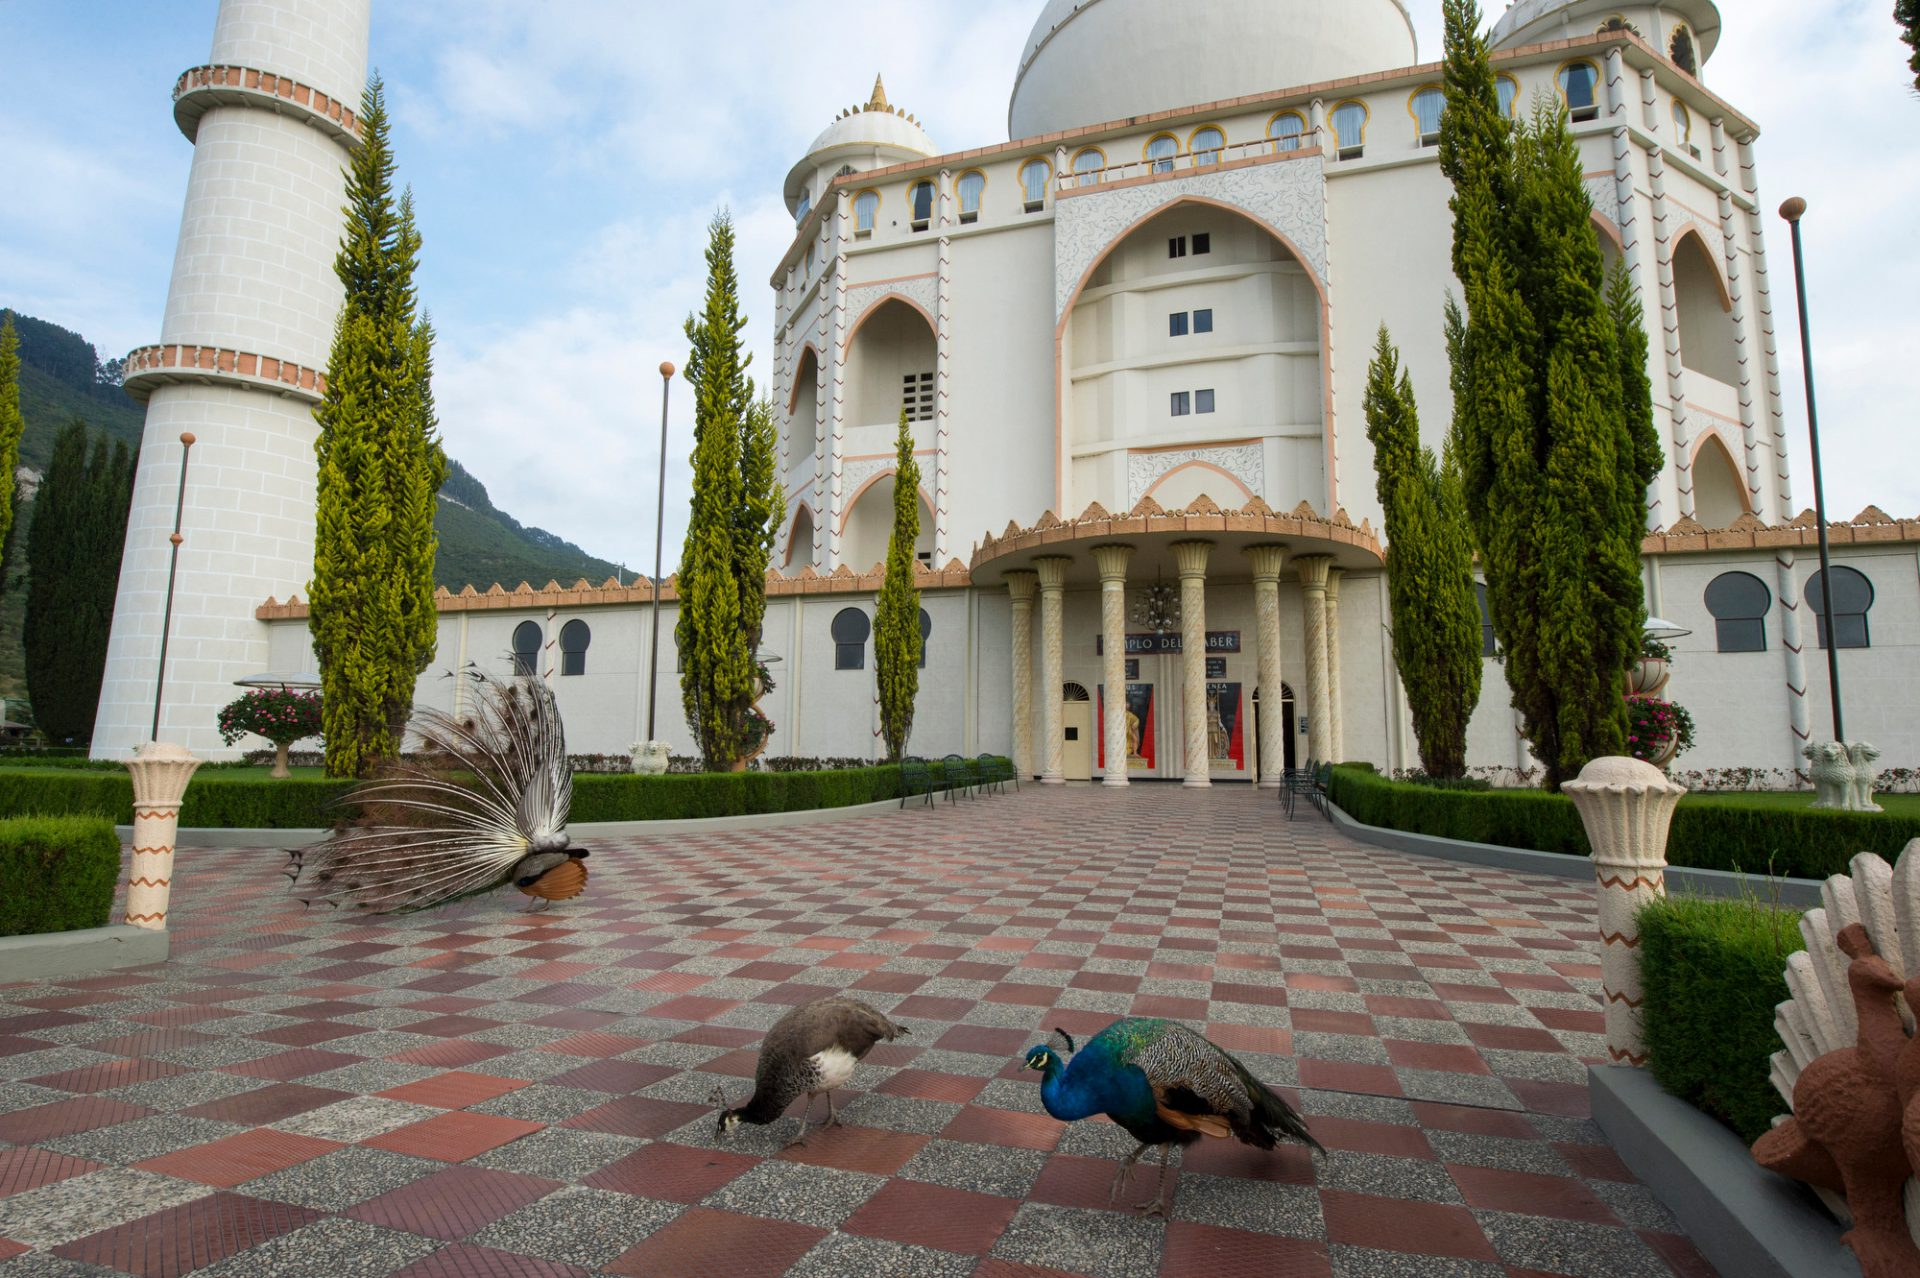 Photo: A peacocks outside the replica of the Taj Mahal at Parque Jaime Duque in Colombia.